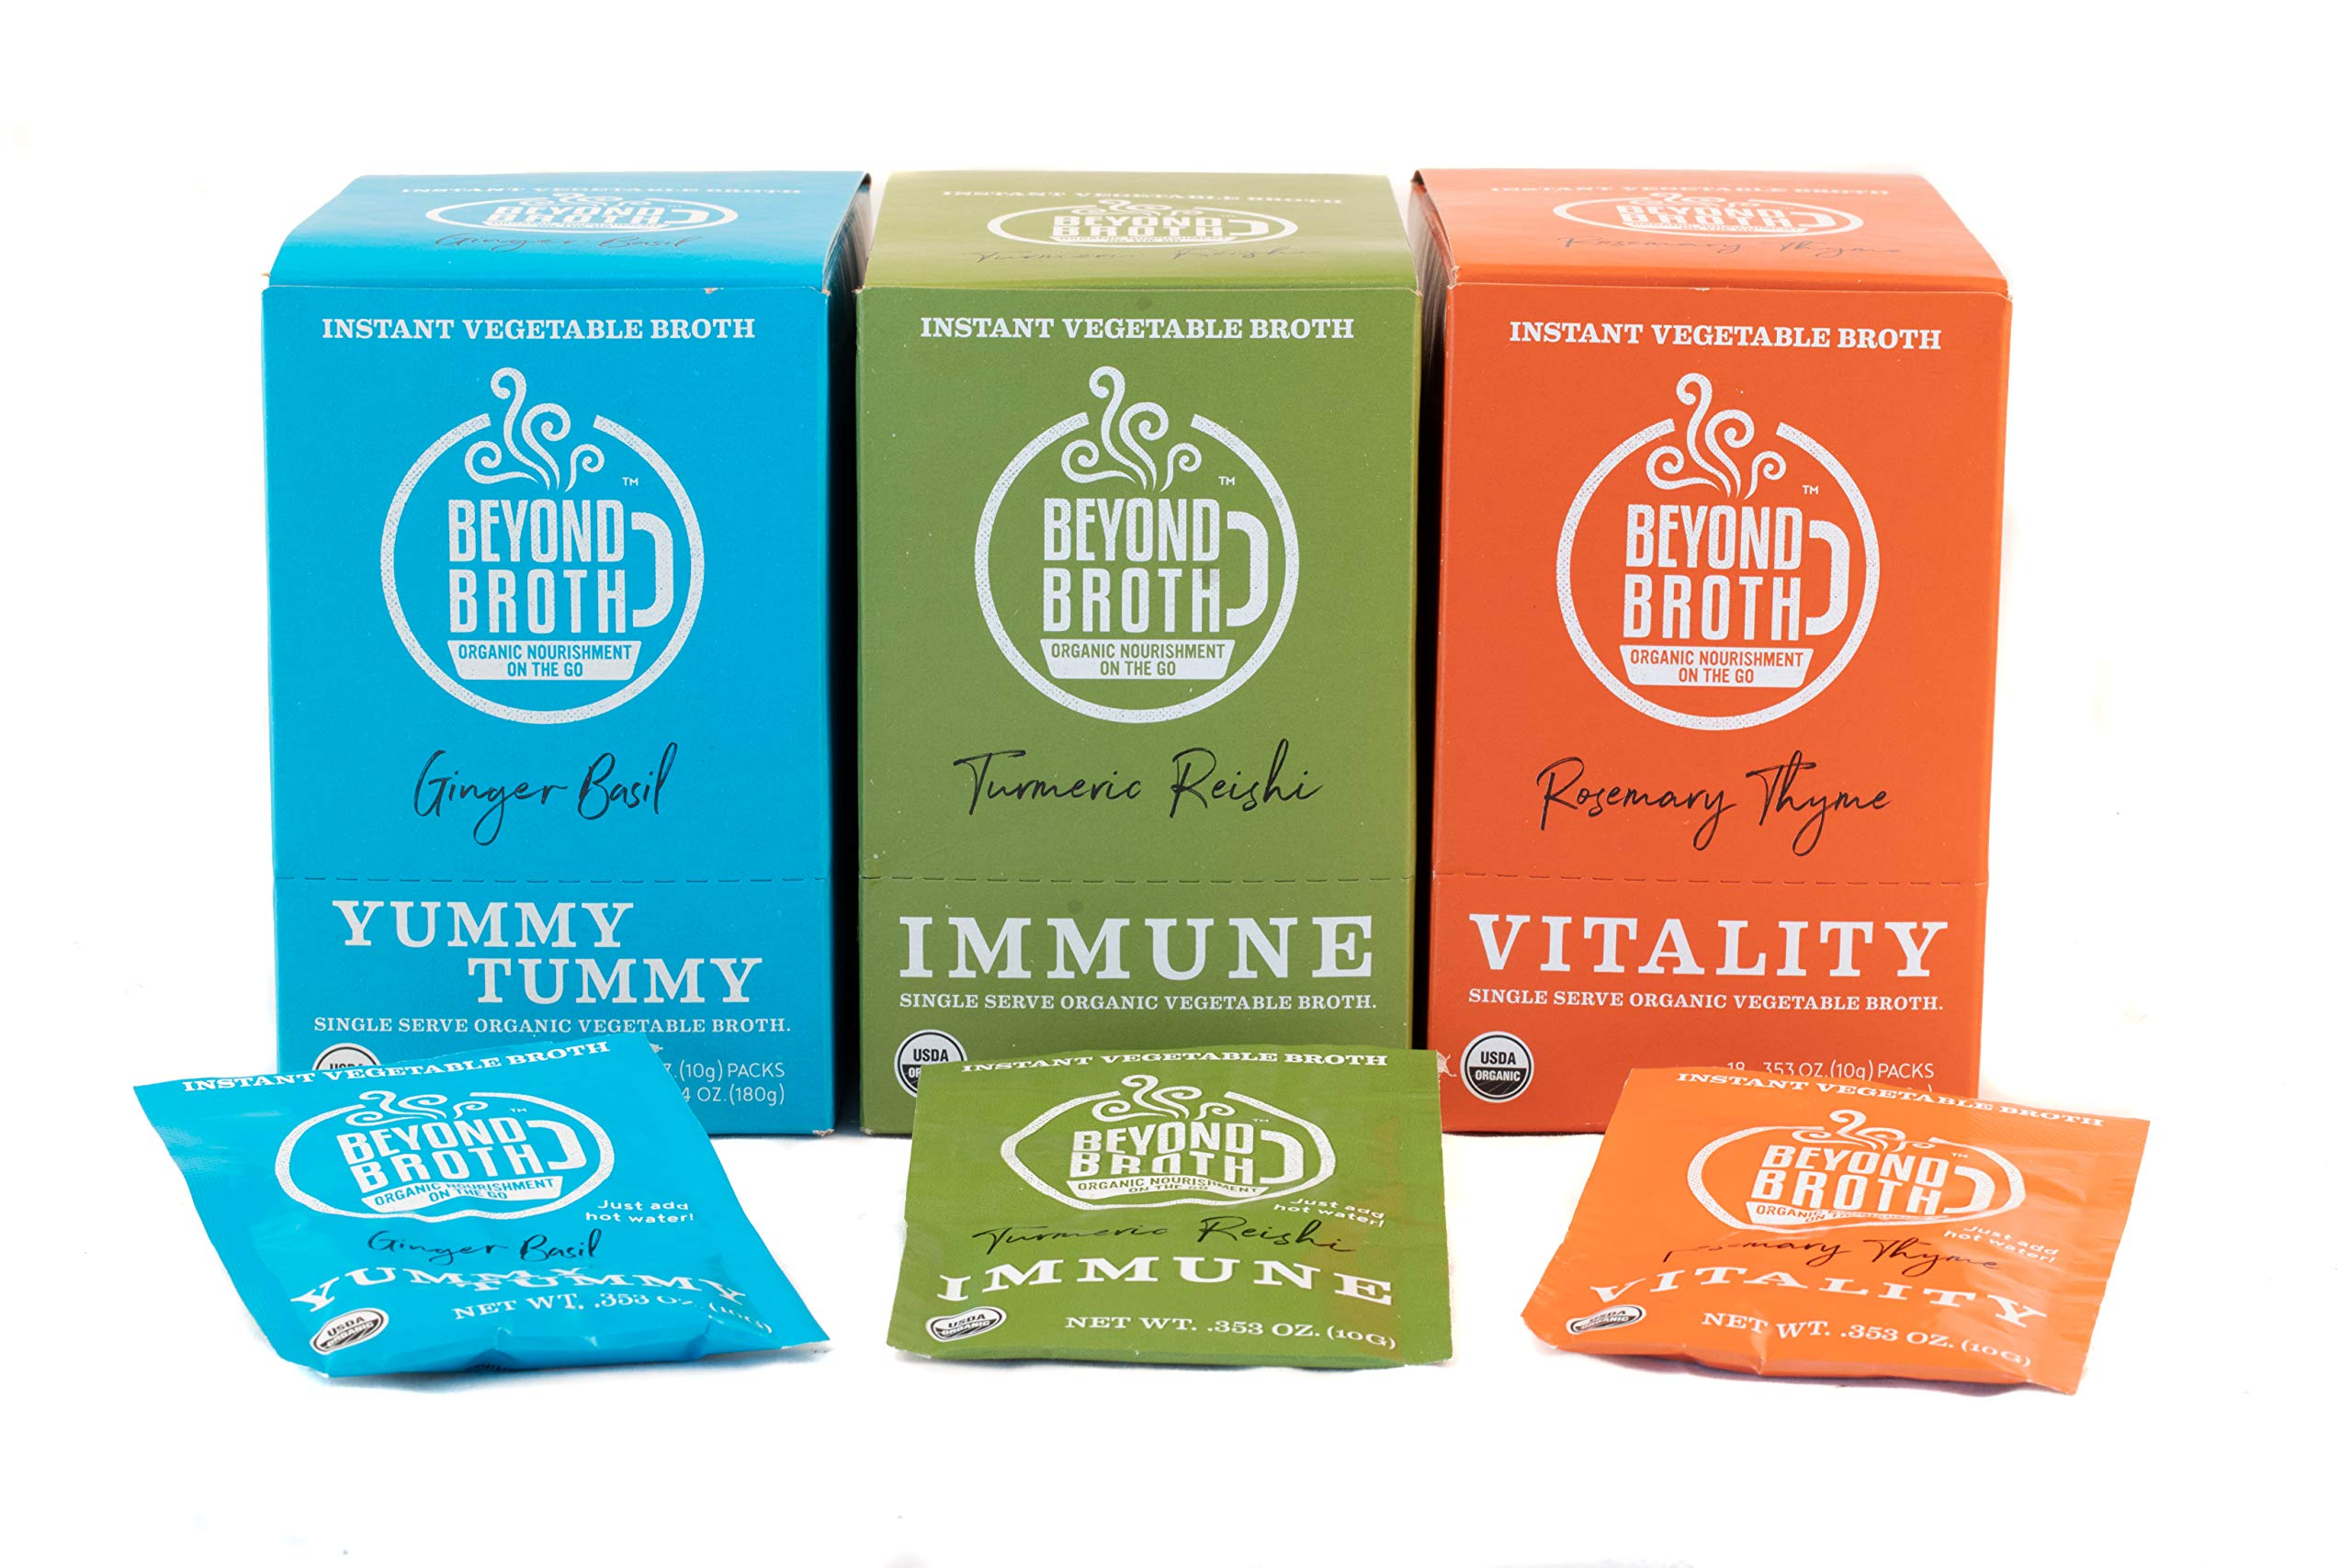 Beyond Broth - Instant Vegan Sipping Broth (Variety, 18 Pack) - Organic Vegetable Broth Powder For On The Go Or Cooking - Keto, Paleo, and Whole30 Friendly by Beyond Broth